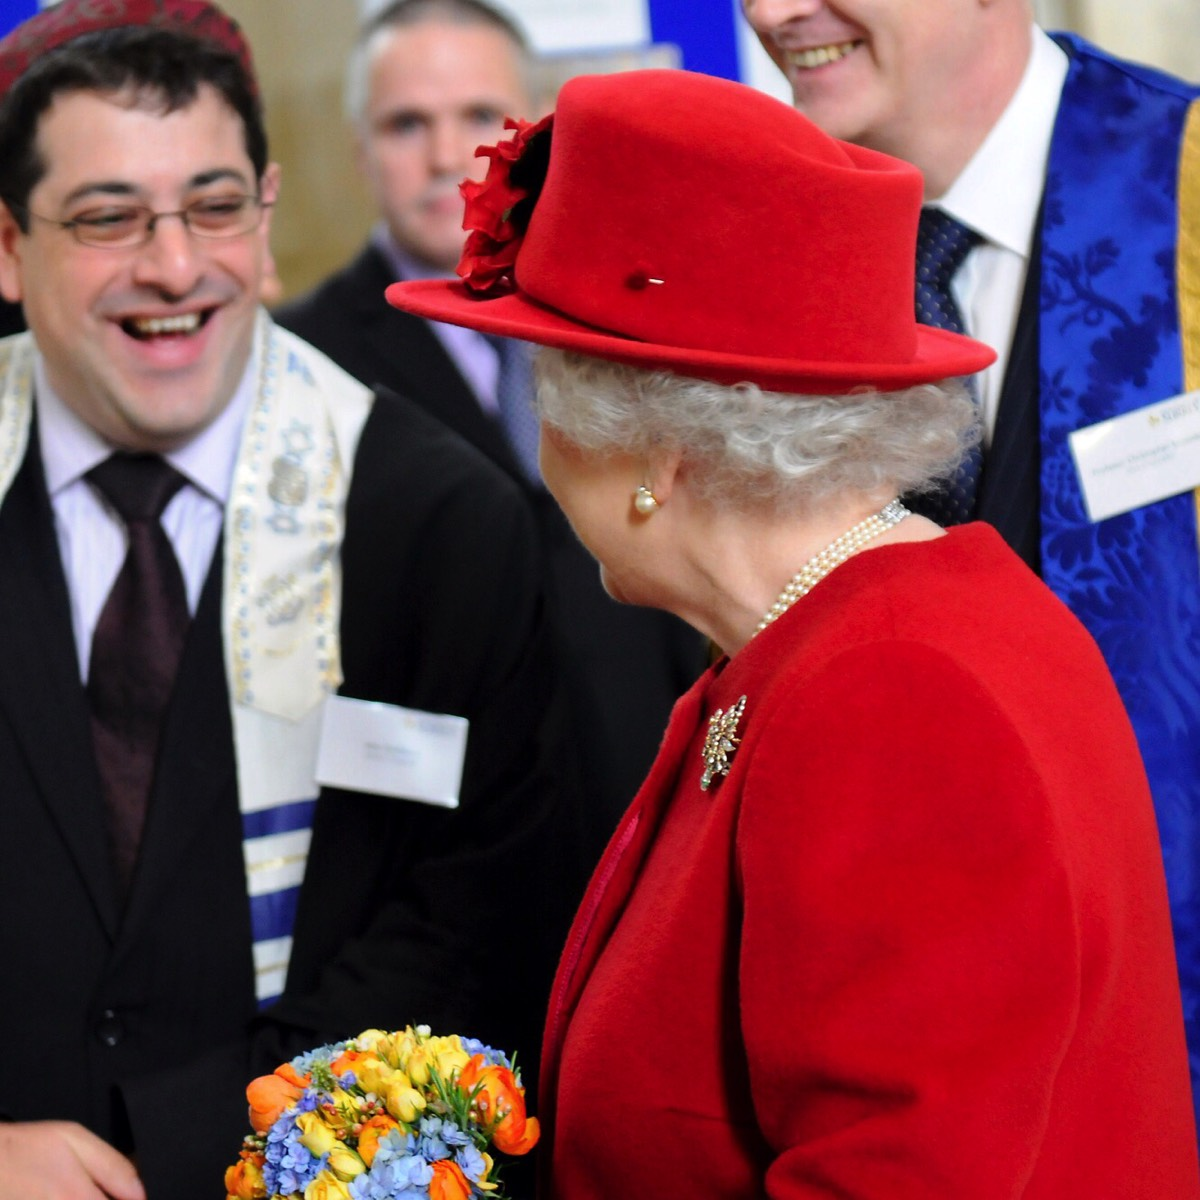 Alexander Goldberg with Queen Elizabeth II